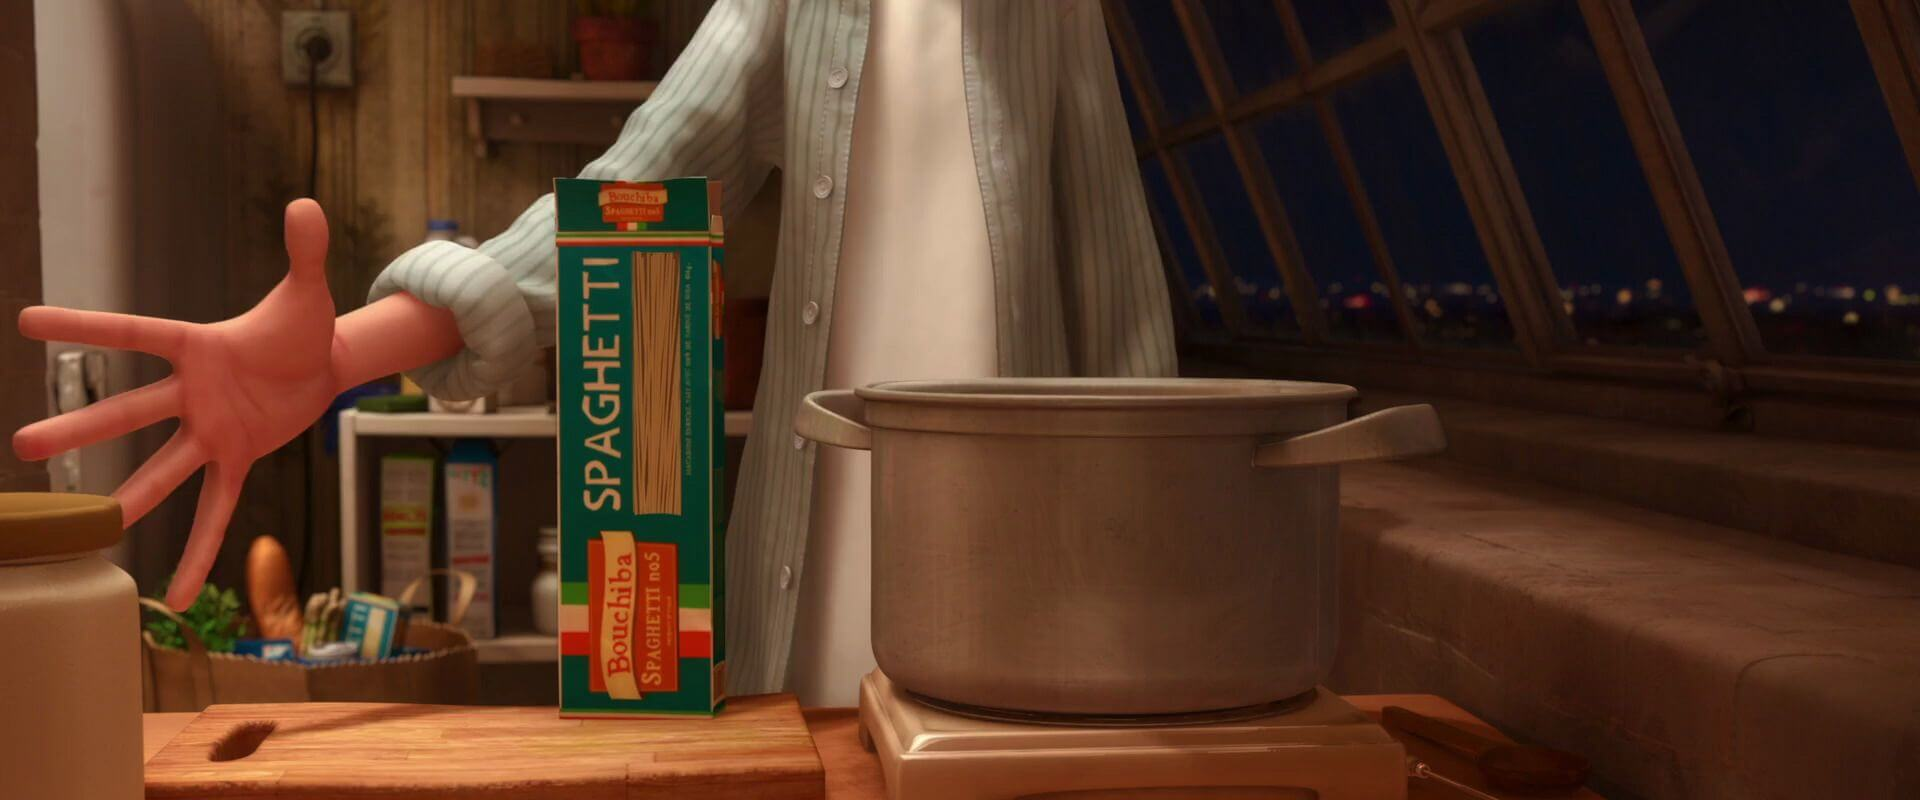 Movie Ratatouille Facts- Spaghetti brand